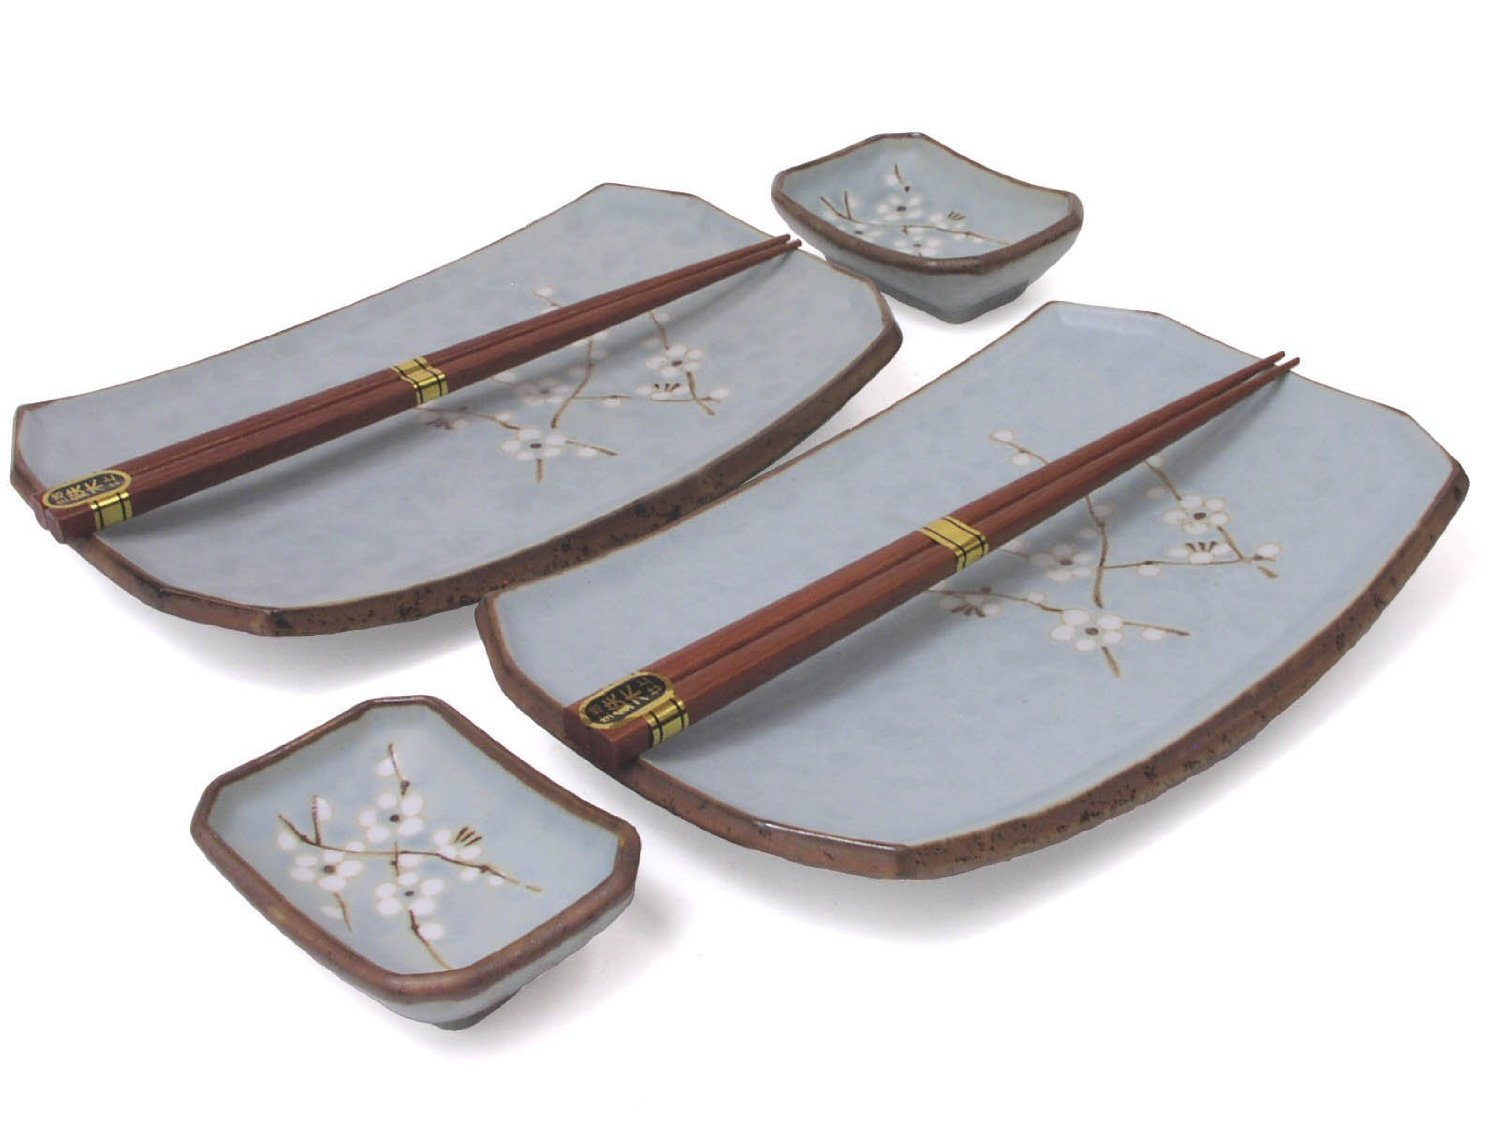 Happy Sales Happy Sales 6 pc Japanese Sushi Plate Dinnerware set Cherry Blossom Blue,, Light Blue